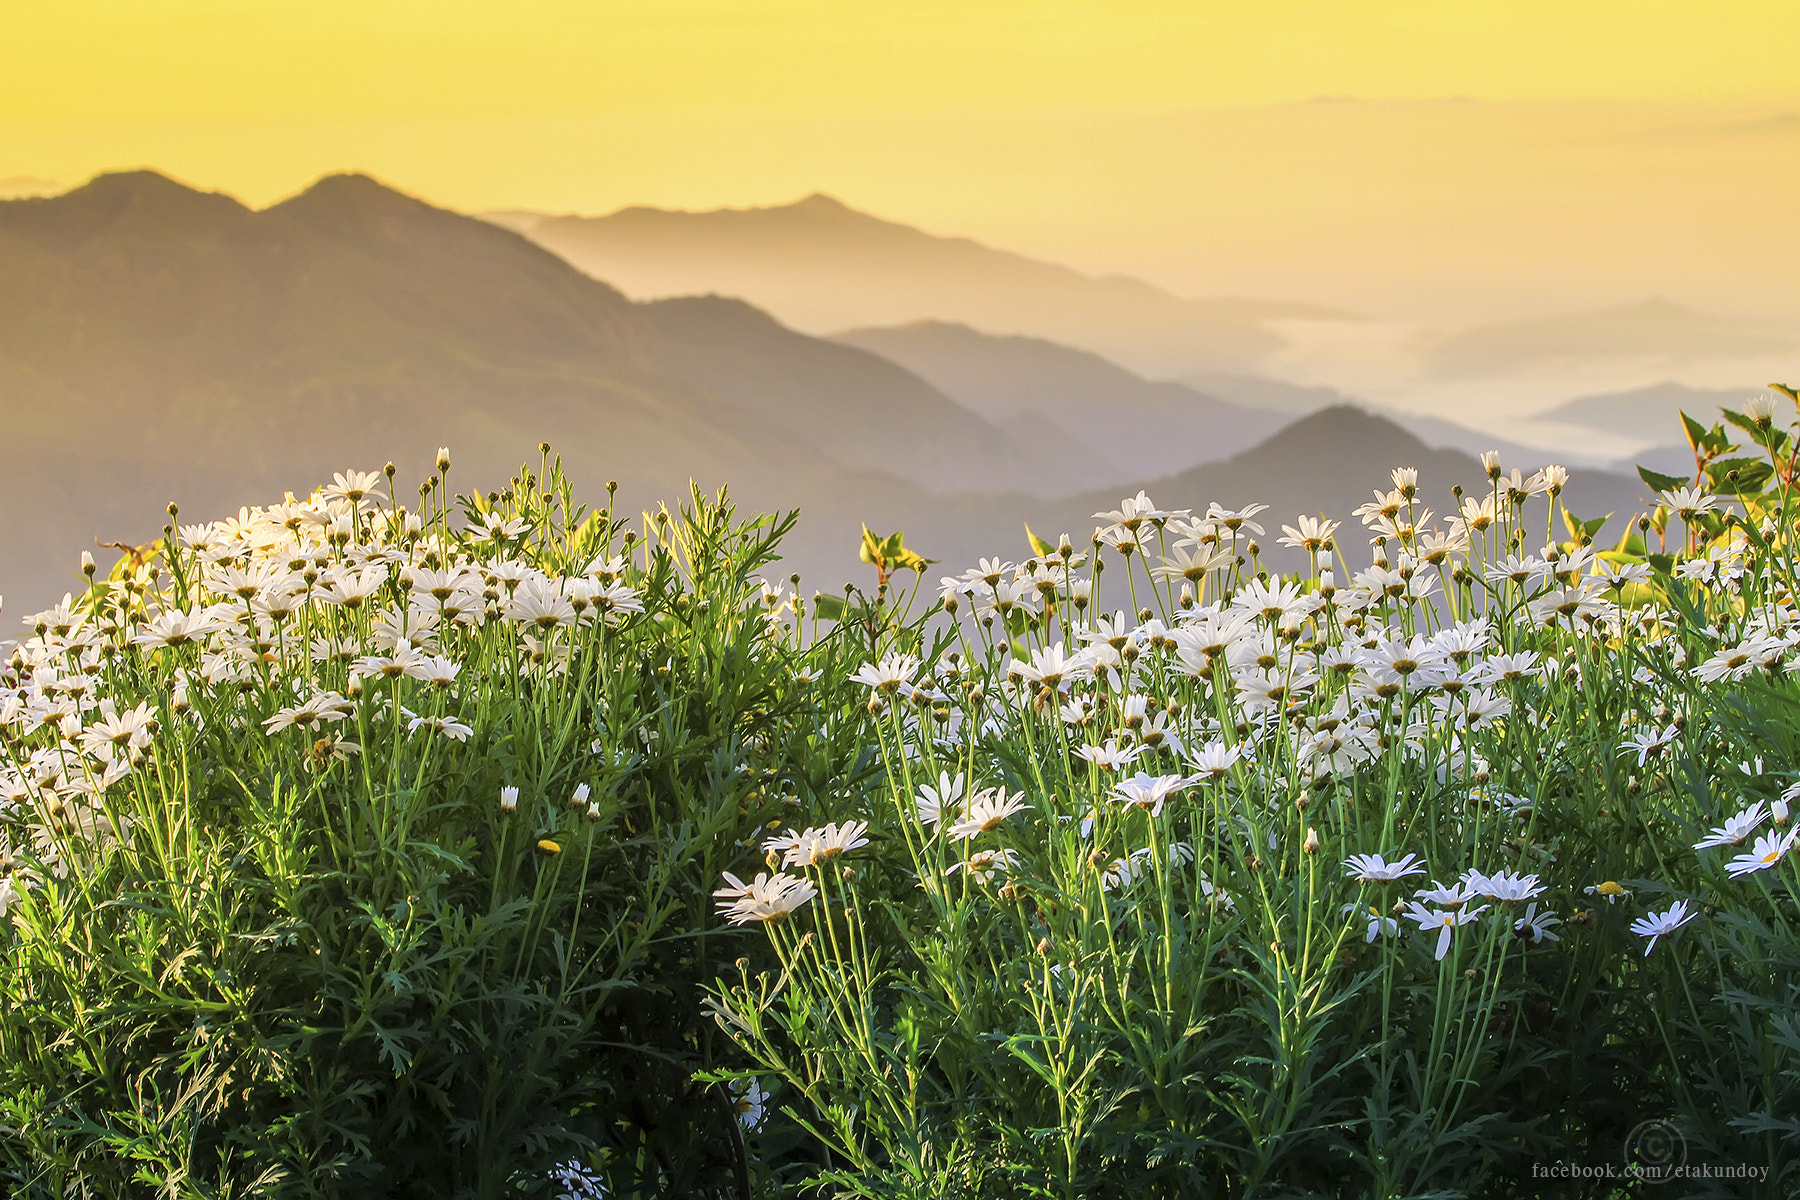 Photograph Flower and mountain by Tawan Chaisom on 500px